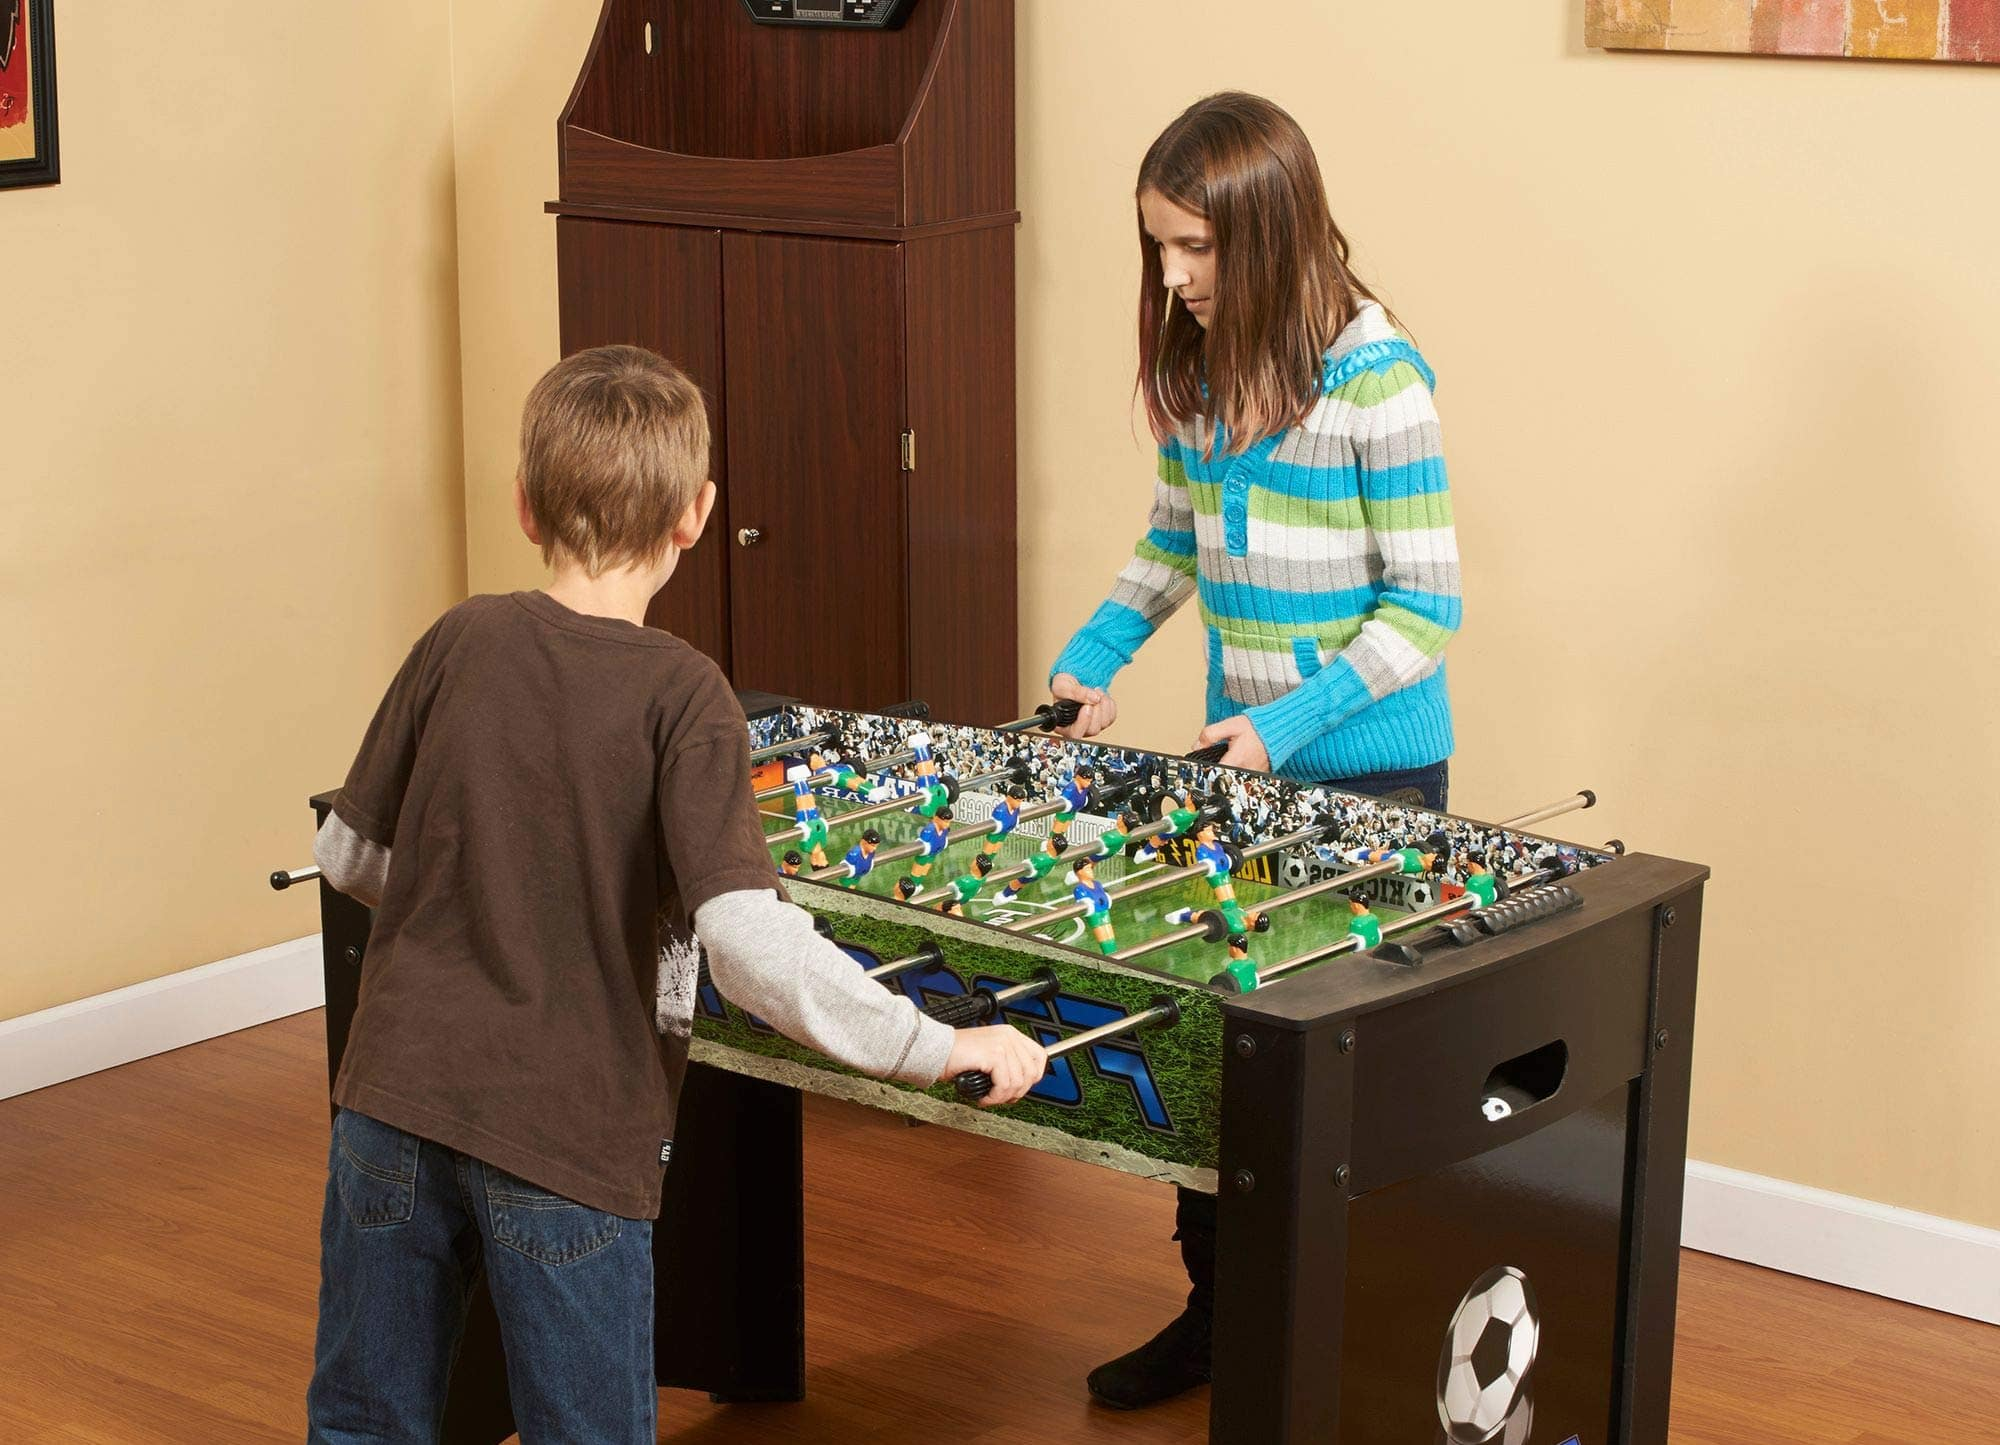 5 Best Foosball Tables For Kids Reviewed In Detail Dec 2019